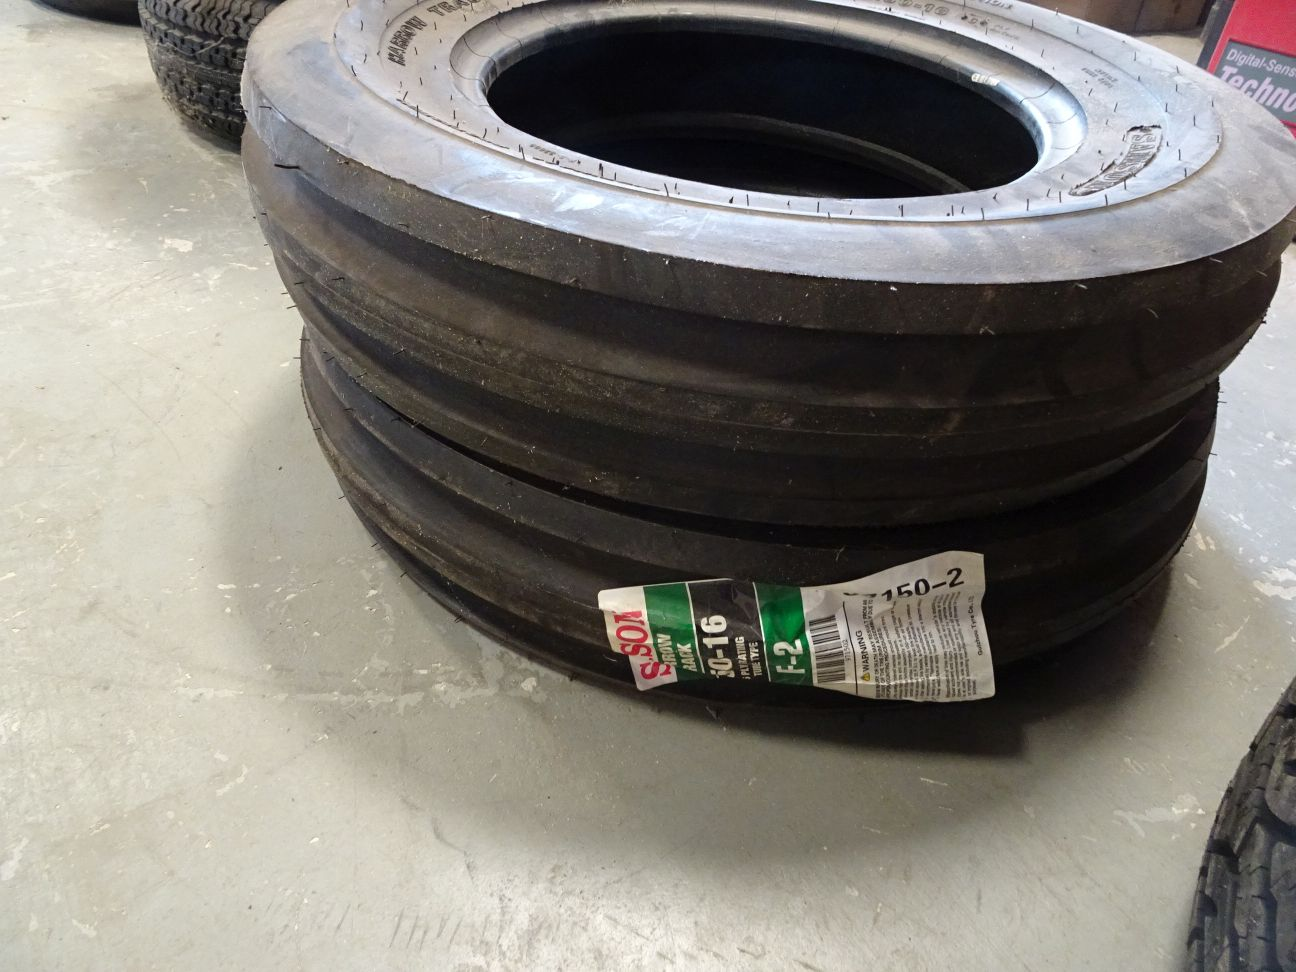 Lot 29 - (2) NEW SAMSON HARROW TRACK TIRES, SIZE 6.50/16 (LOCATION: SHOP)